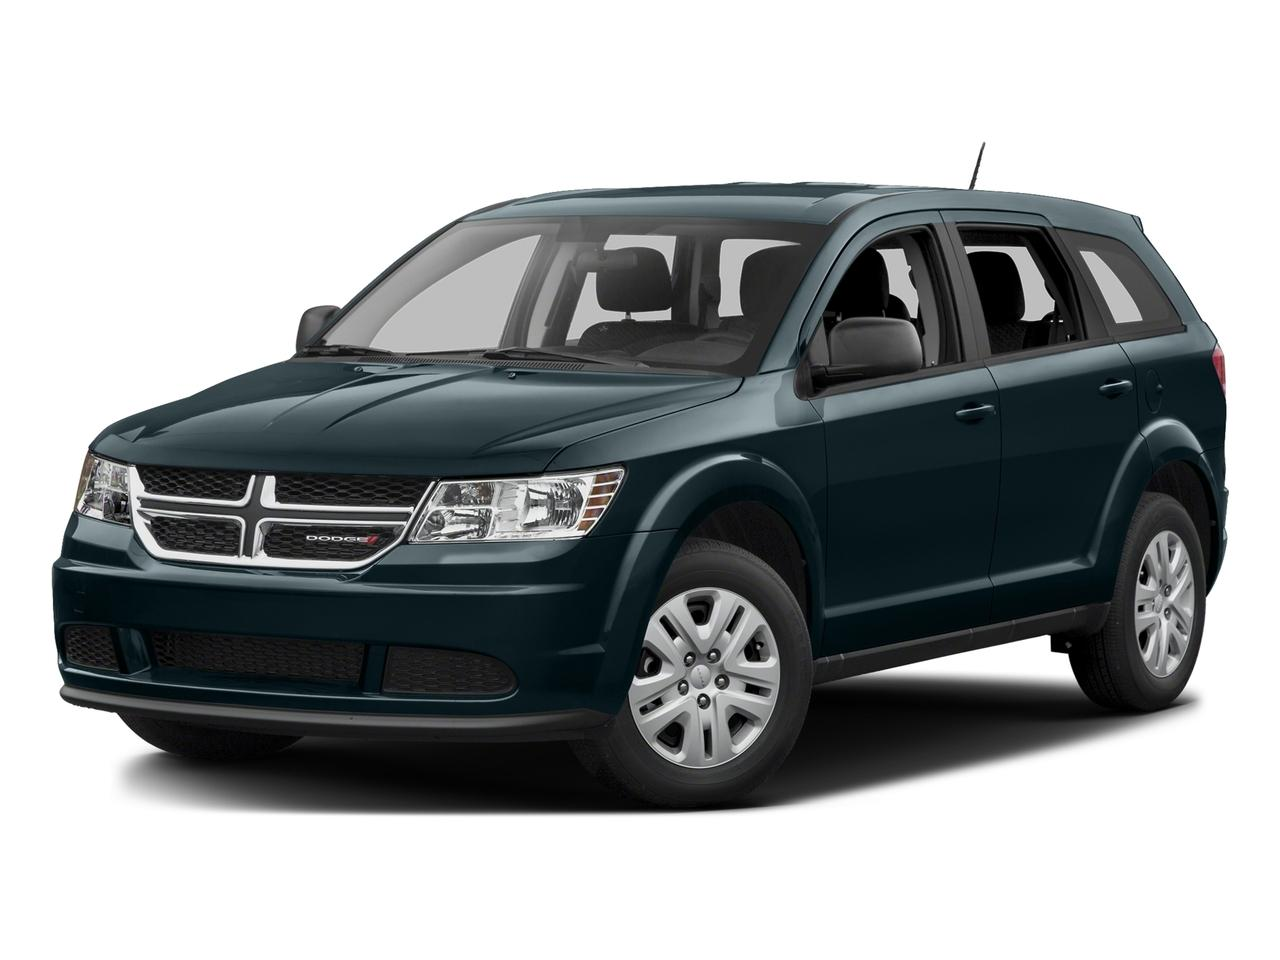 2015 Dodge Journey Vehicle Photo in Prescott, AZ 86305